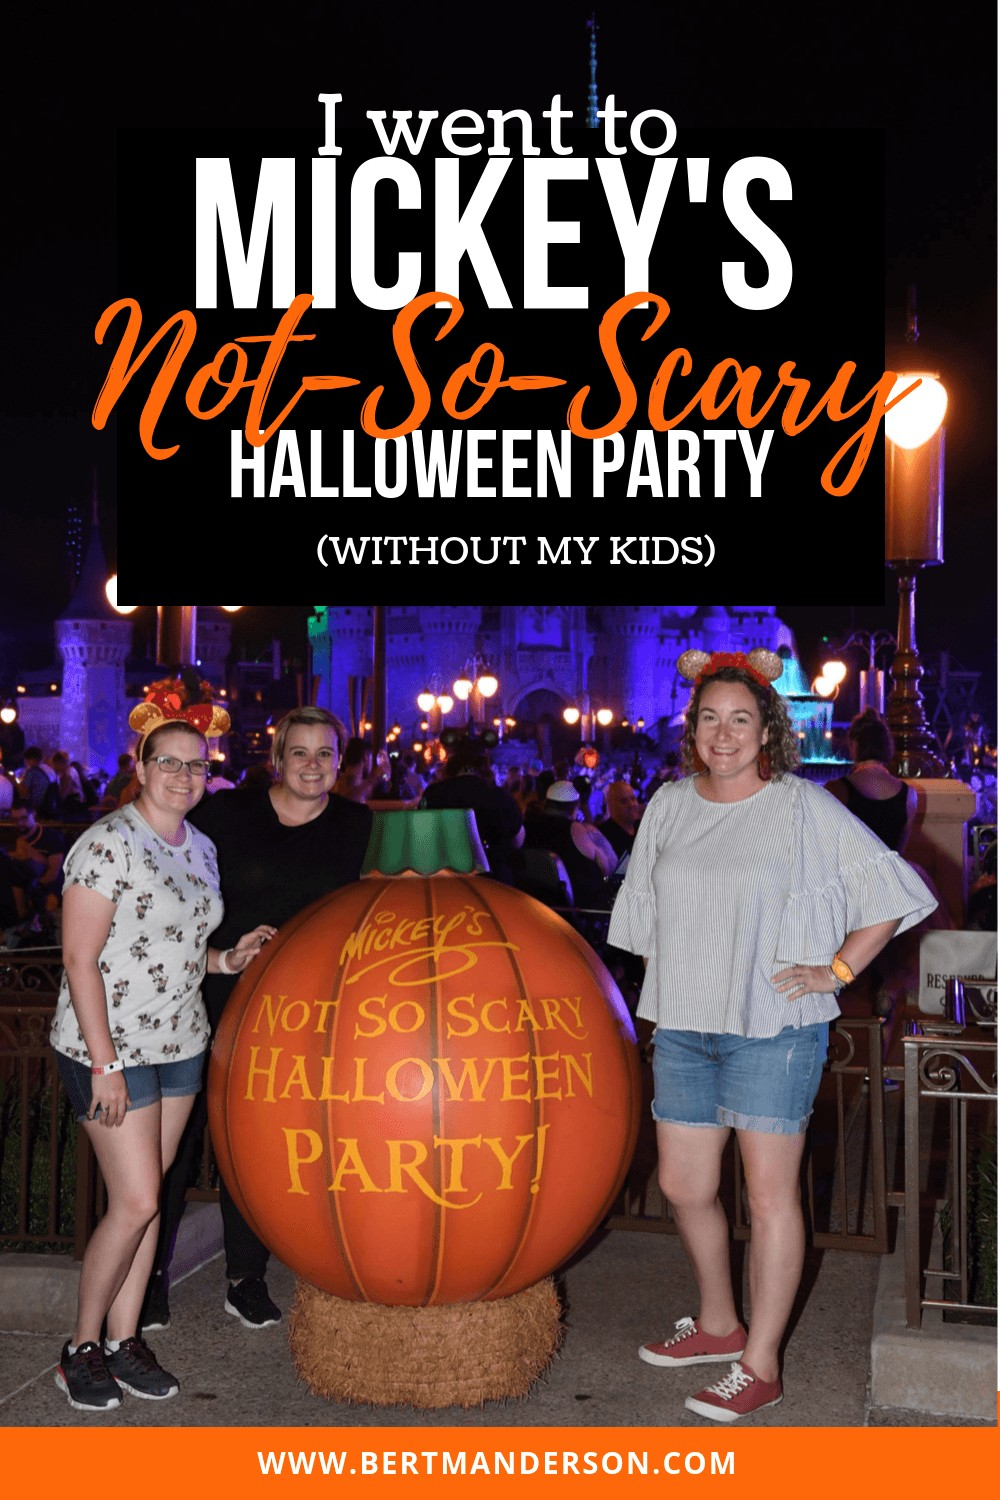 Wanna know if Mickey's Not-So-Scary Halloween Party is worth the price? What about not bringing the kids? Get the details on that and more with this in depth look at what this Disney World party is like for us grown-ups. #disneyworld #notsoscary #halloween